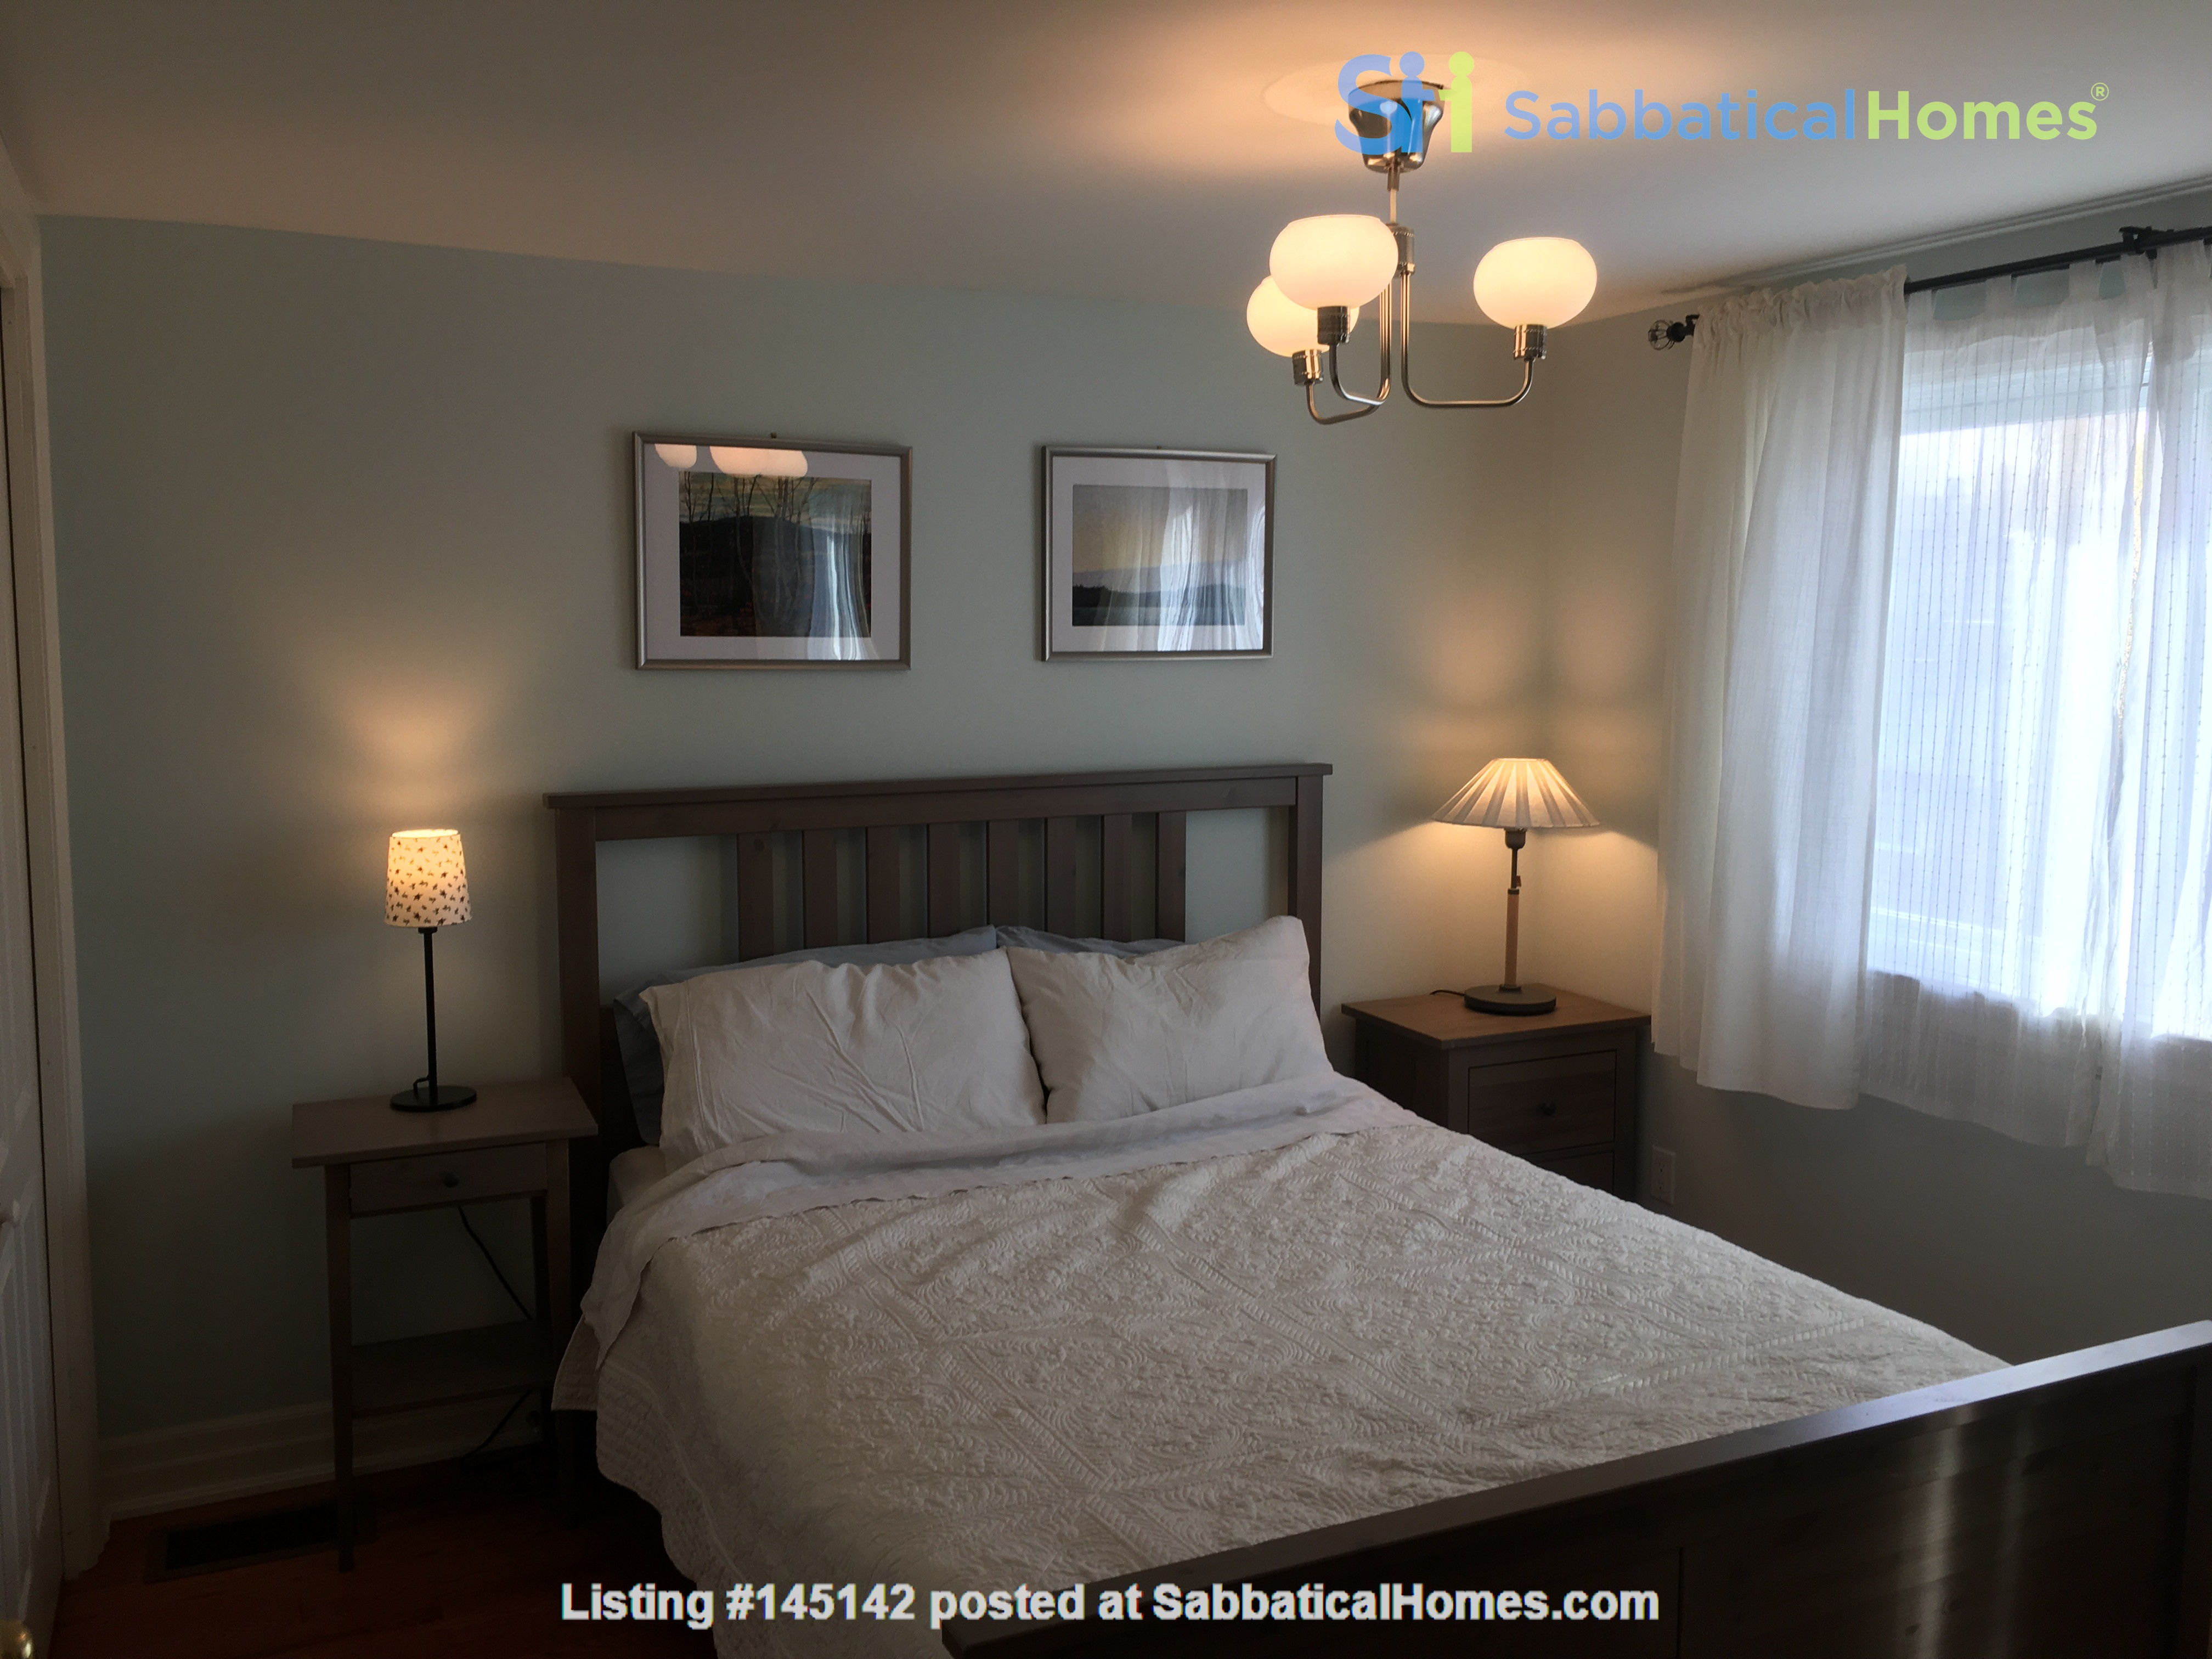 Family friendly townhome with parking in central Toronto Home Rental in Toronto, Ontario, Canada 1